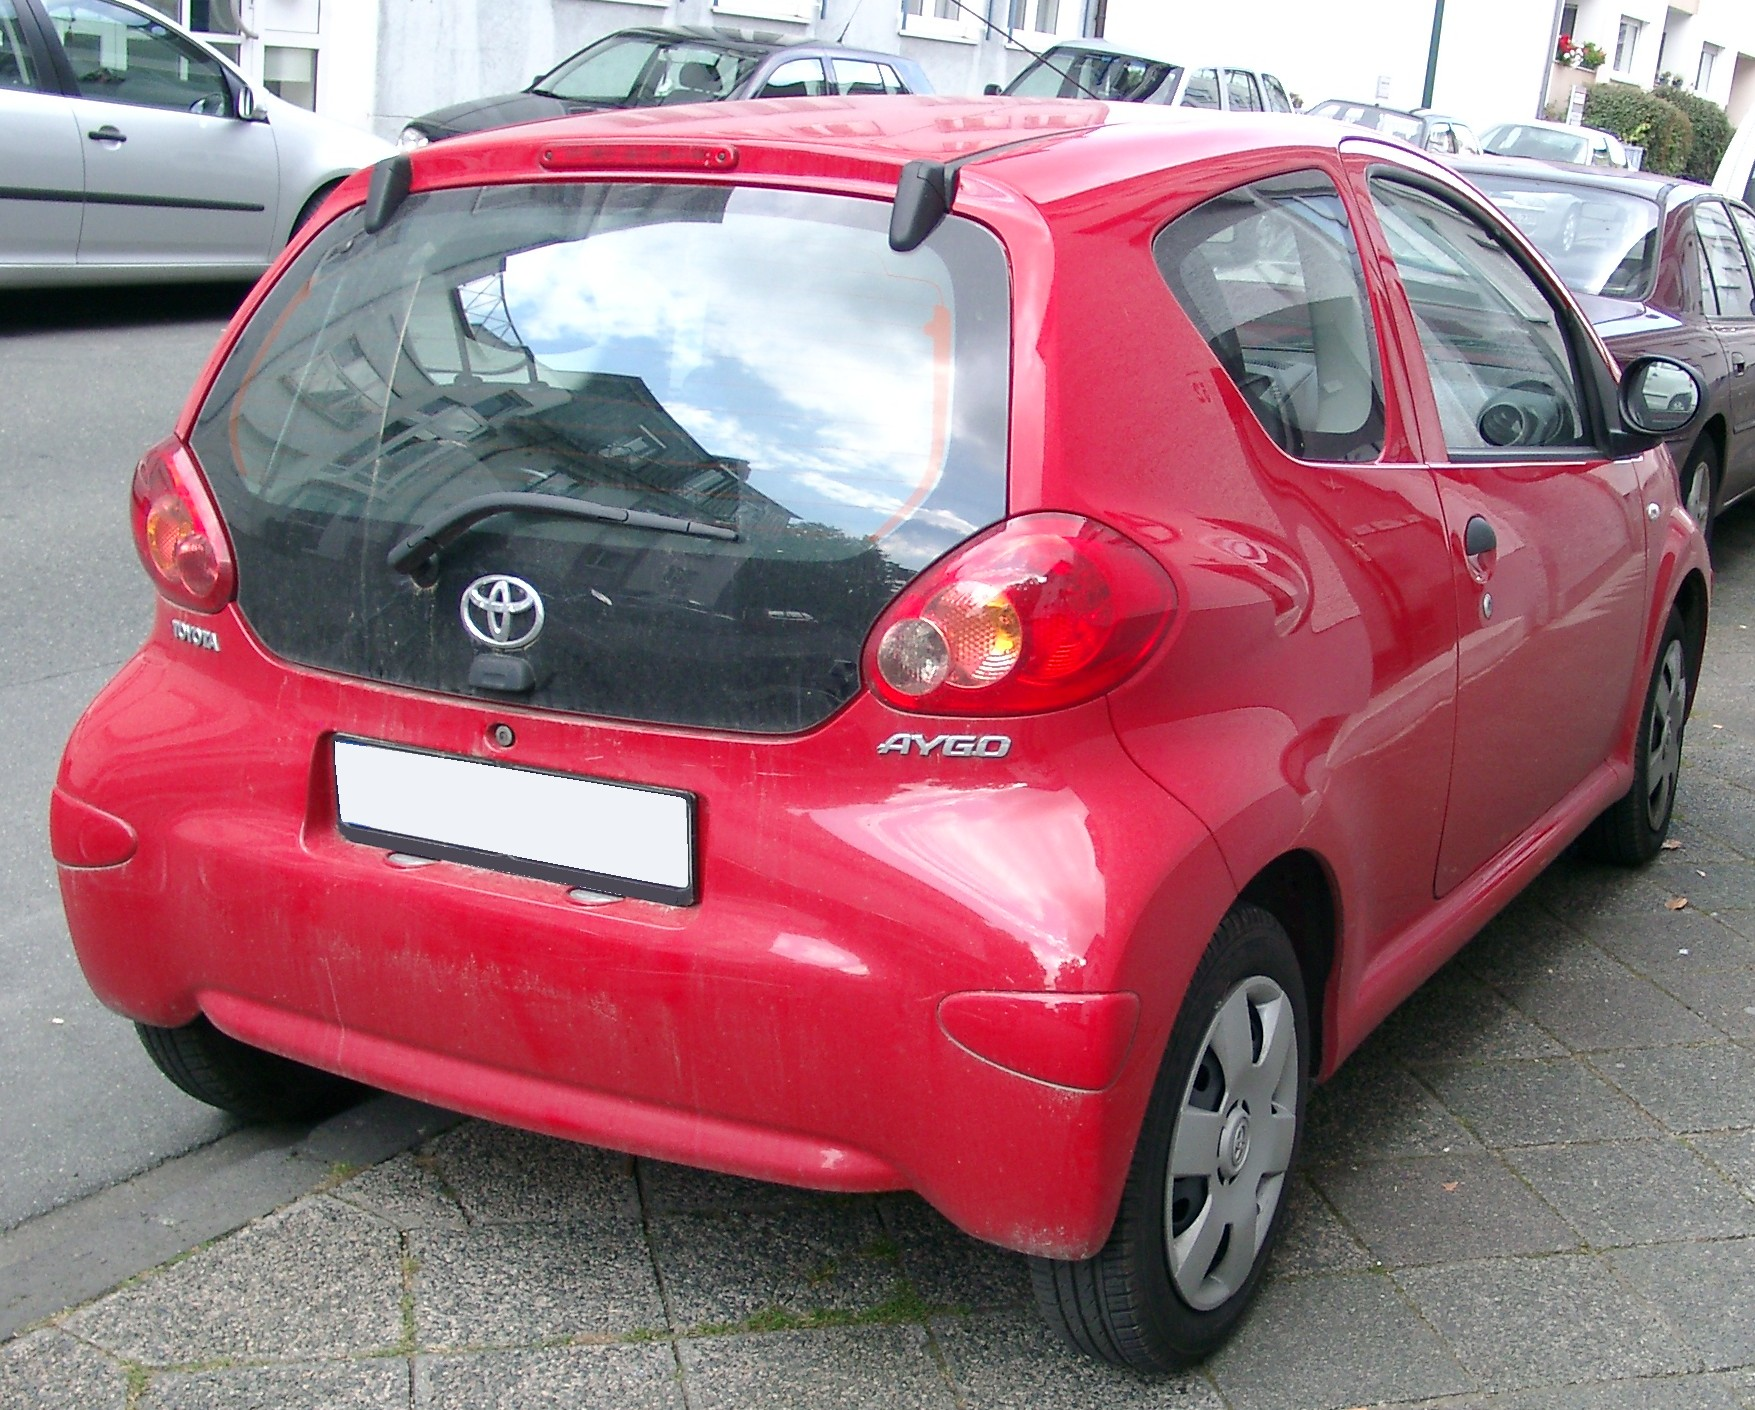 file toyota aygo rear wikimedia commons. Black Bedroom Furniture Sets. Home Design Ideas